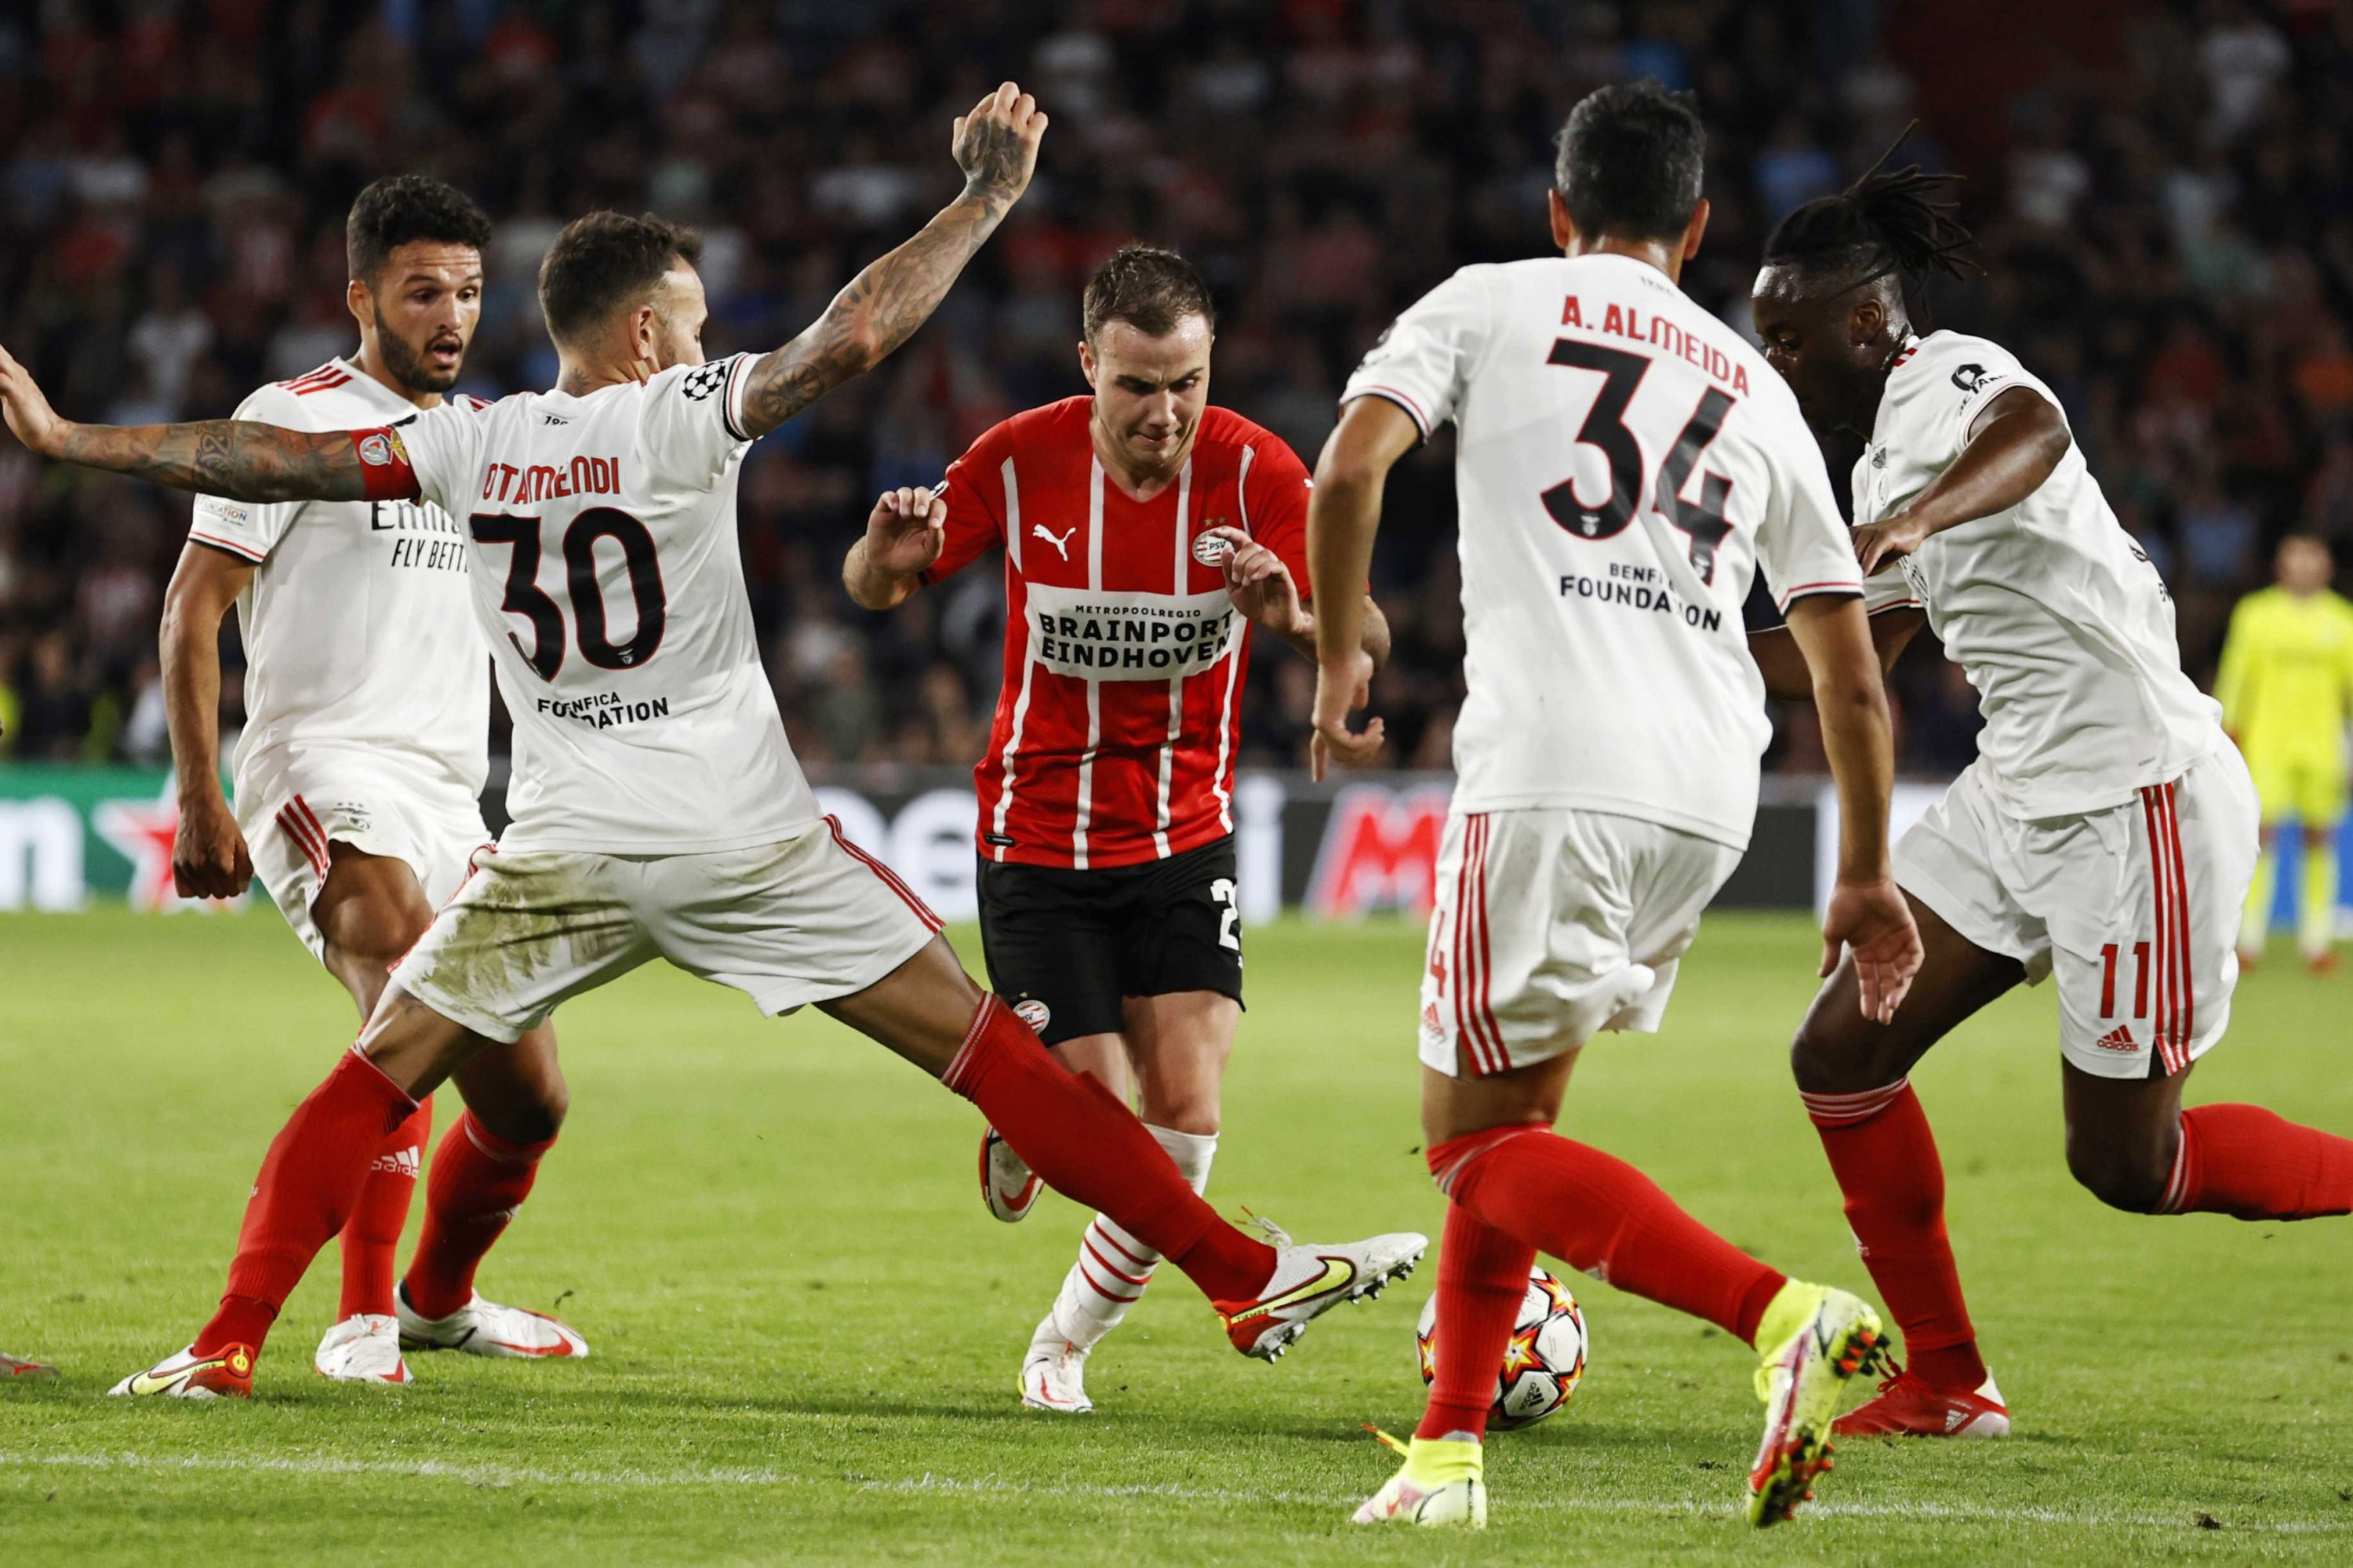 Benfica's Nicolas Otamendi (2nd L) tries to stop PSV's Mario Gotze (C) during a Champions League playoff at Phillips stadium in Eindhoven, Netherlands, Aug. 24, 2021. (EPA Photo)